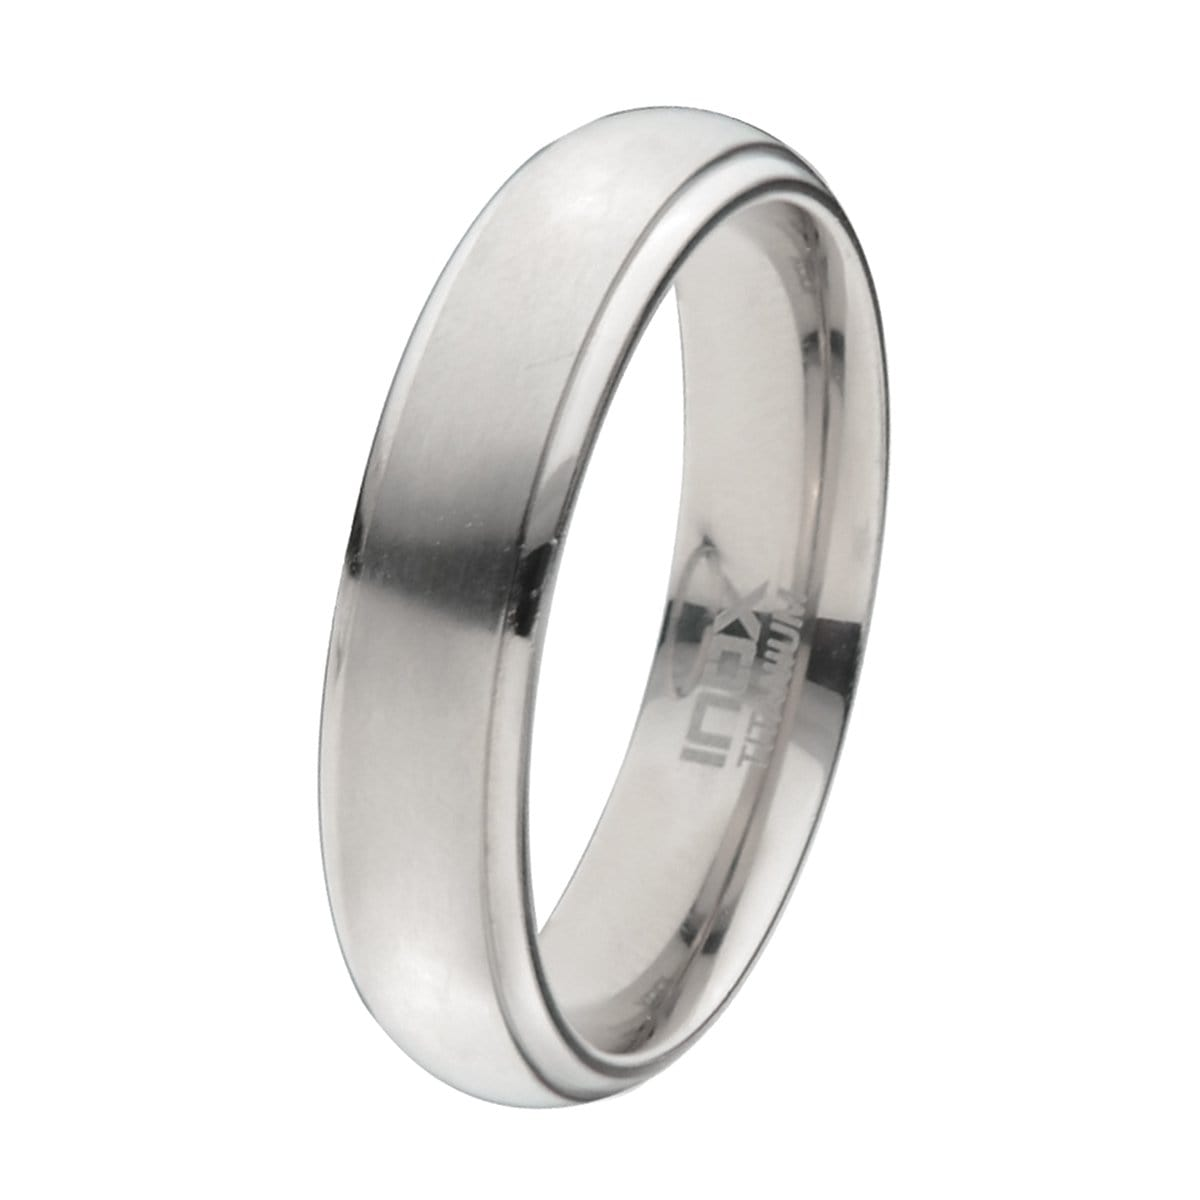 Silver Titanium 5 mm Matt and Polished Edge Band Rings